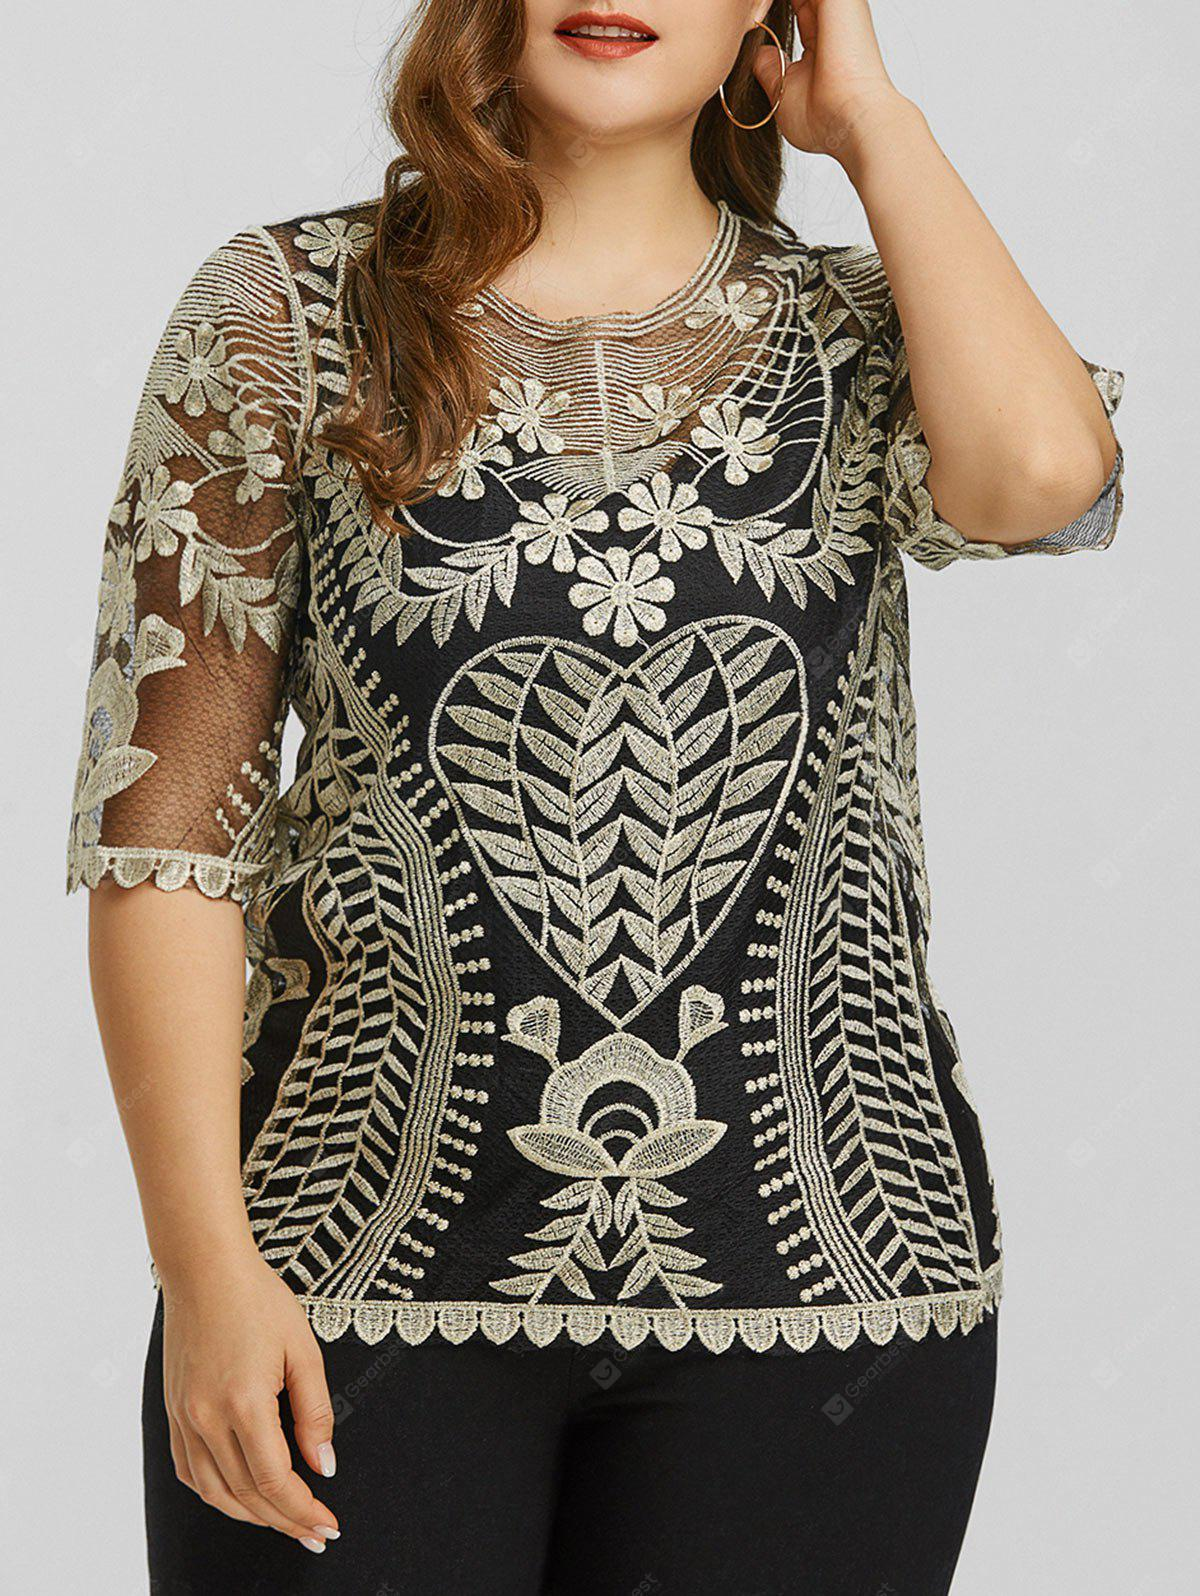 Plus Size Sheer Lace Scalloped Top